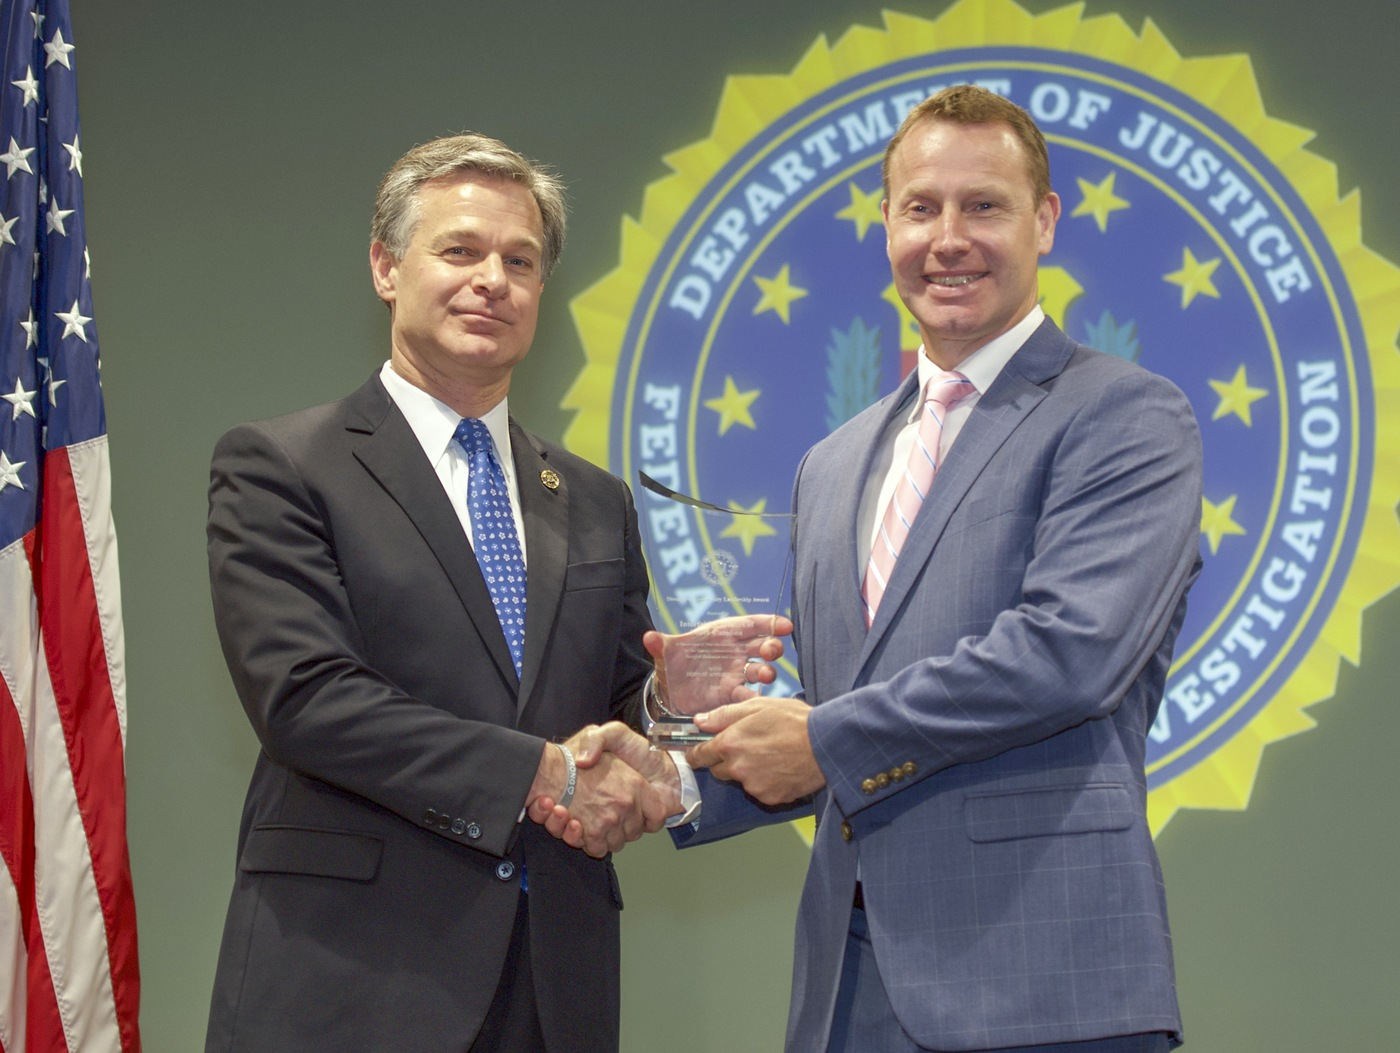 FBI Director Christopher Wray presents Columbia Division recipient Interfaith Partners of South Carolina (represented by Adrian Bird) with the Director's Community Leadership Award (DCLA) at a ceremony at FBI Headquarters on May 3, 2019.